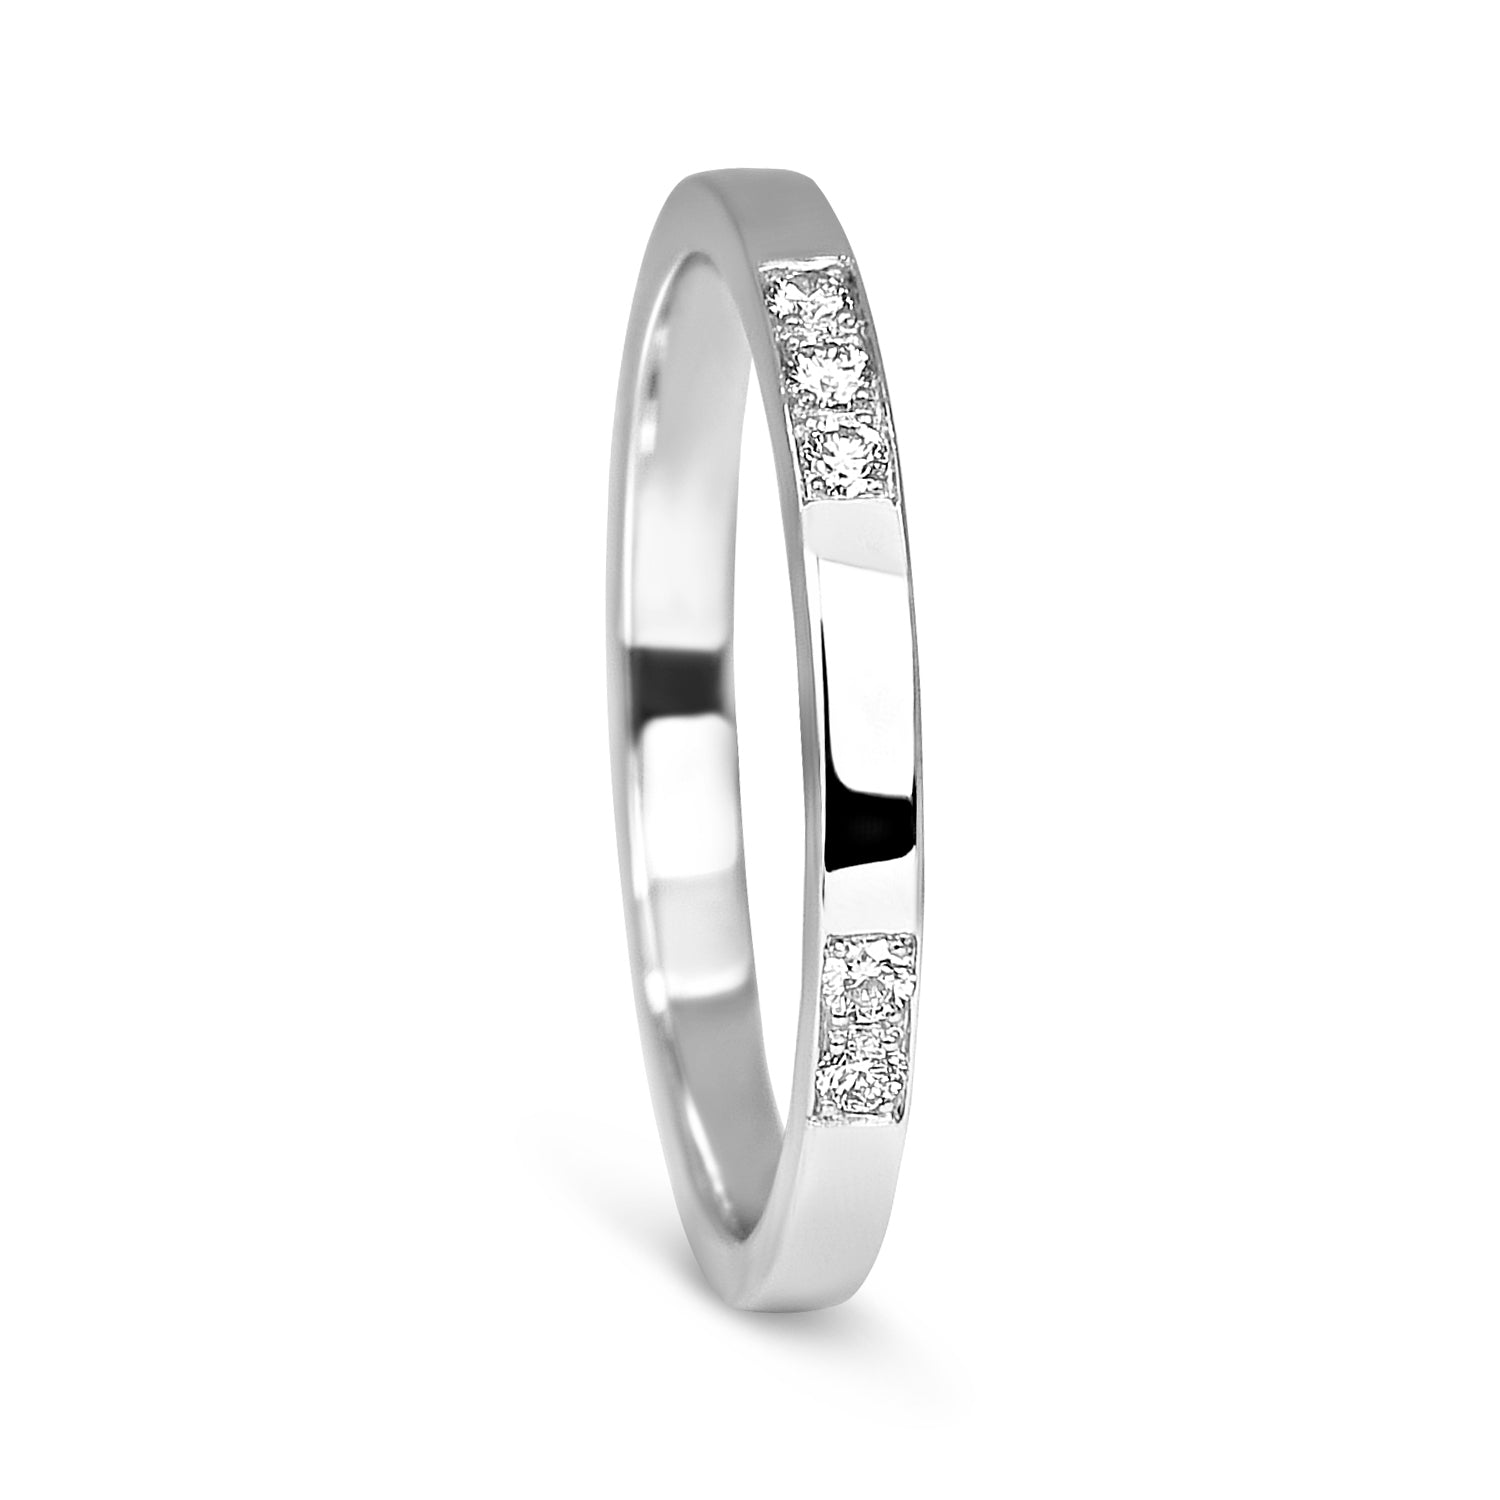 Bespoke Katie wedding ring - 100% recycled platinum and grain-set conflict-free diamonds